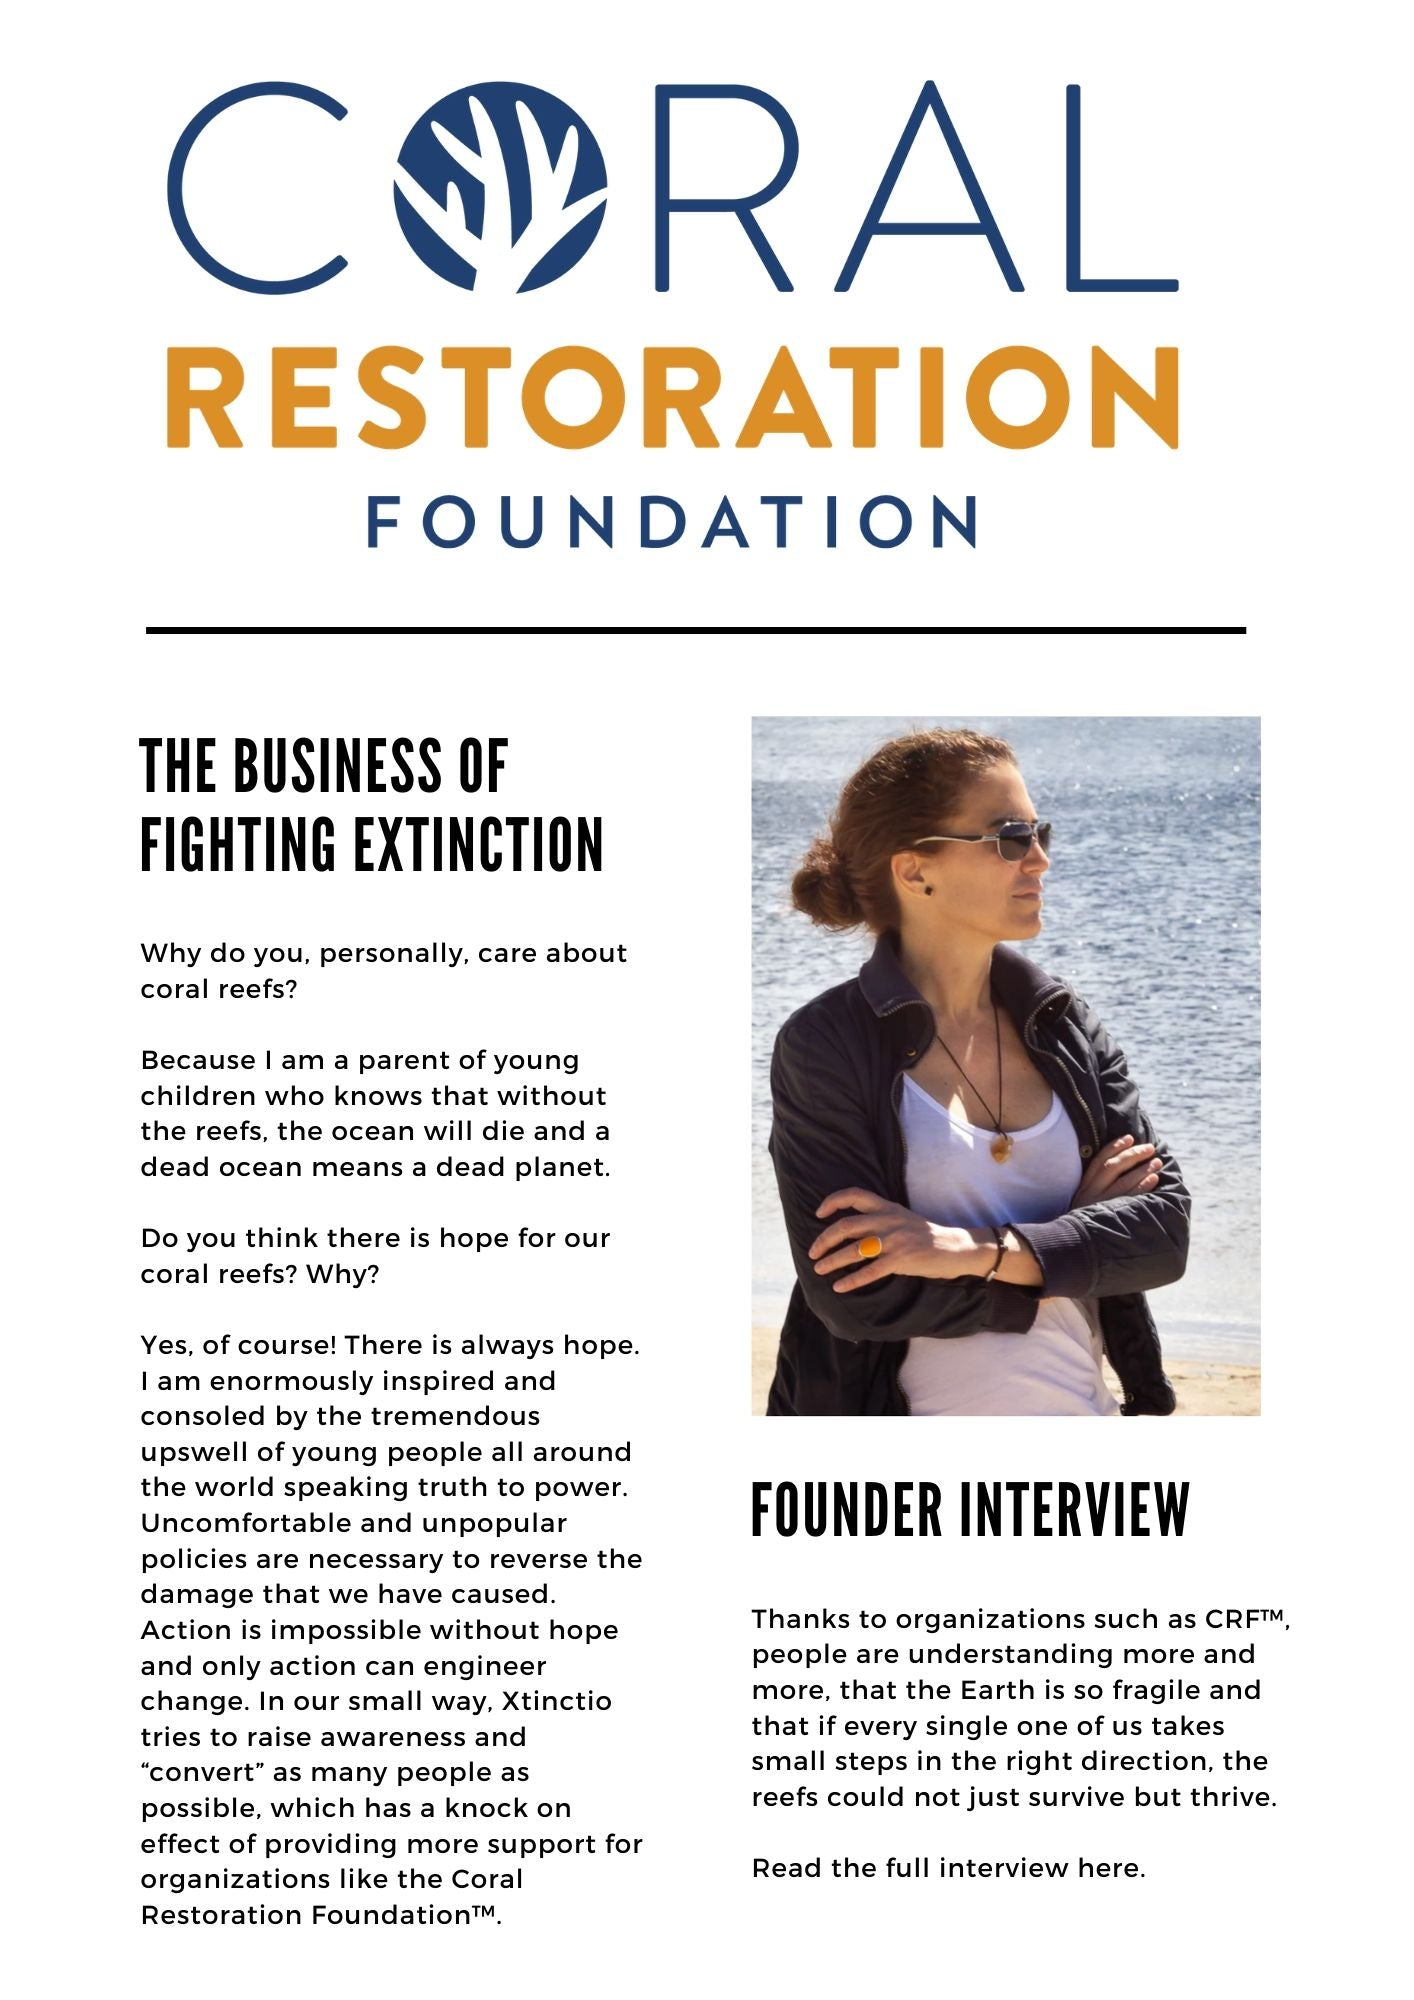 Xtinctio founder interviewed by Coral Restoration Foundation